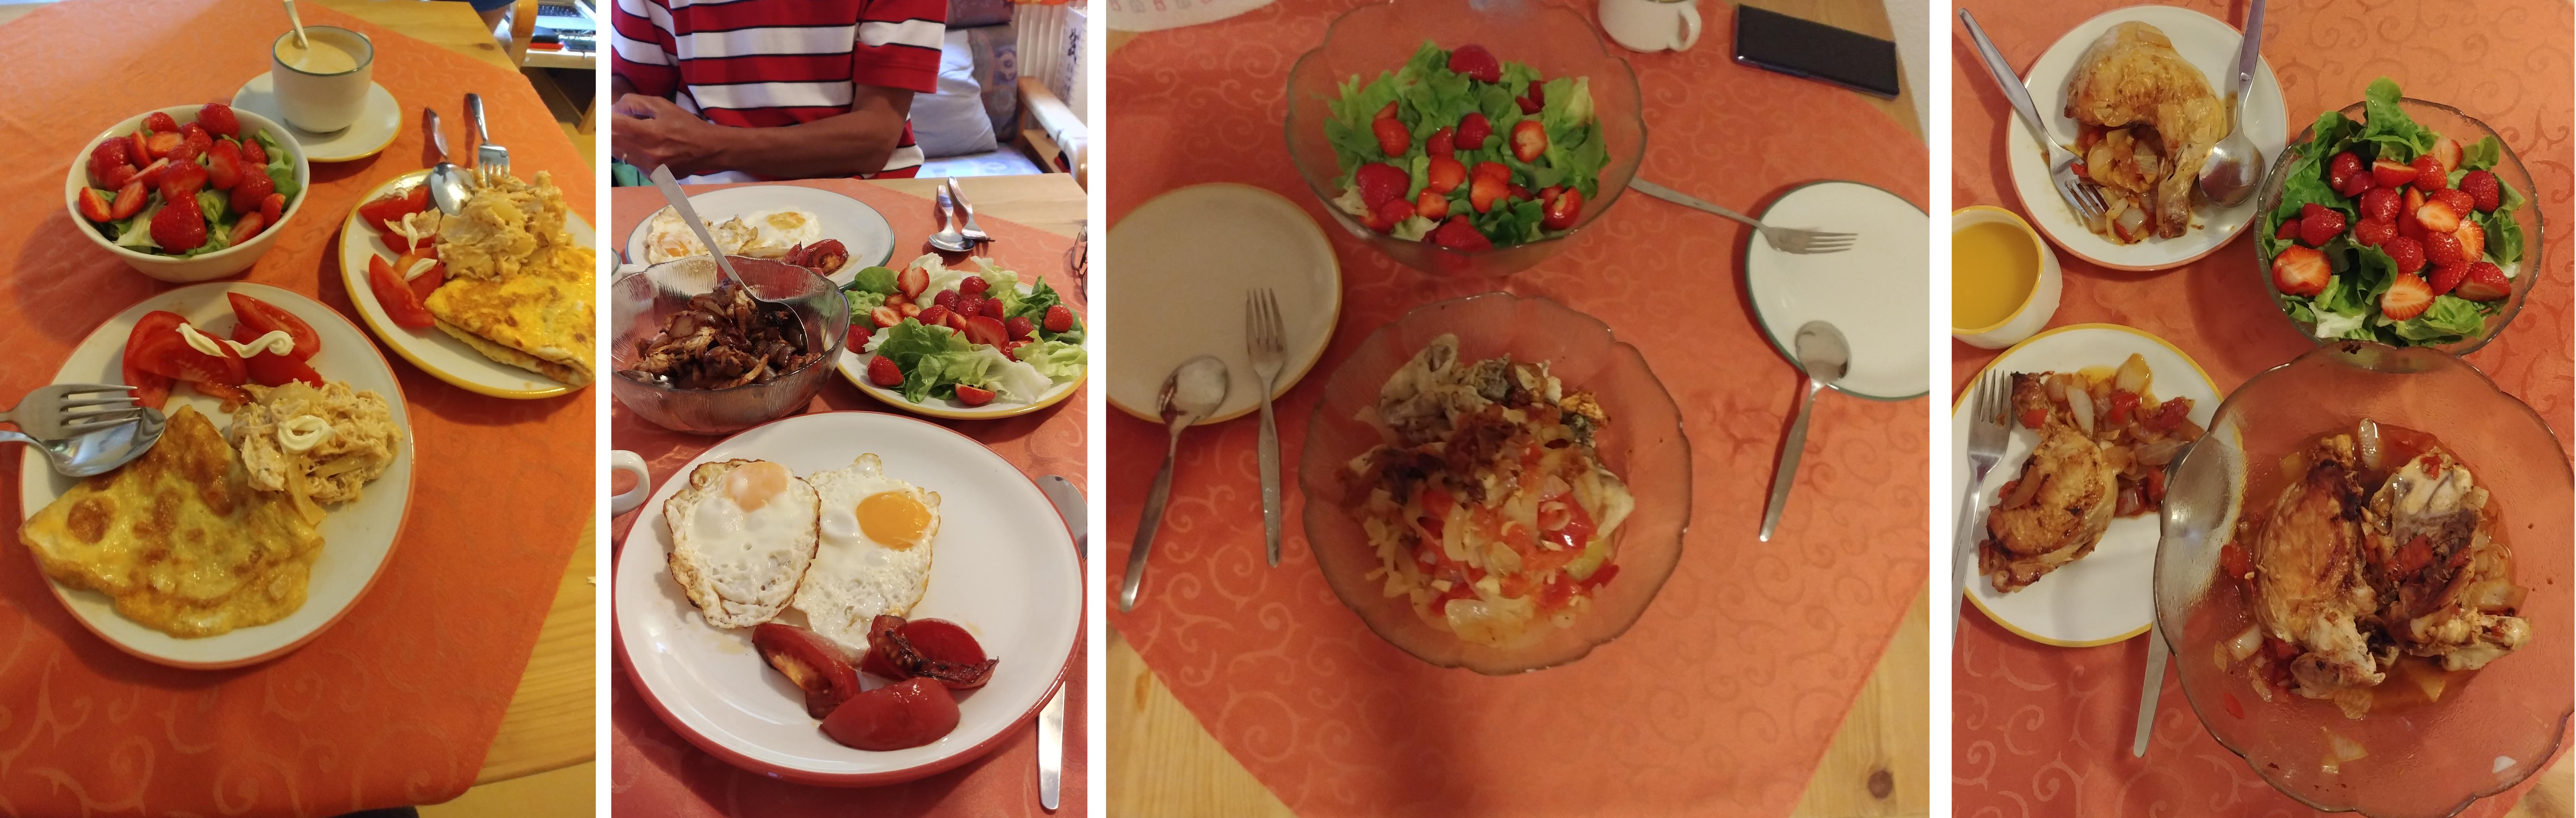 Our home cooked meals at Interlaken stay.